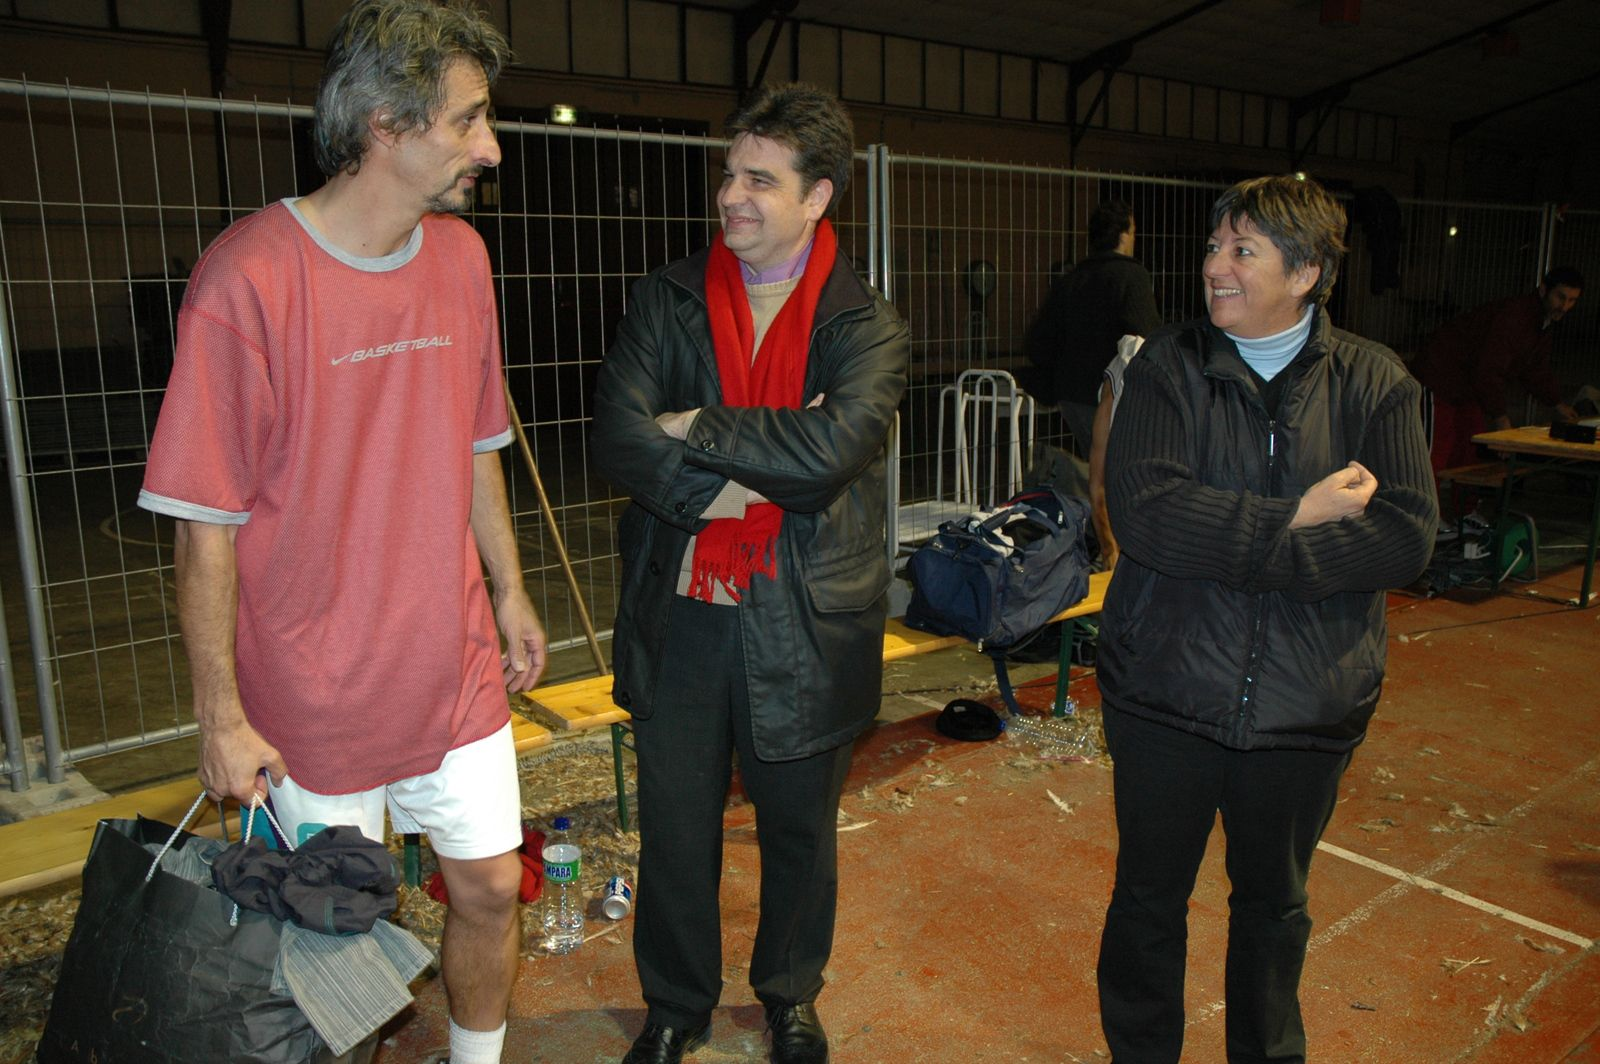 Freddy Hufnagel, Thierry Issartel, maire d'Orthez, et Sabine Lauga, adjointe au maire